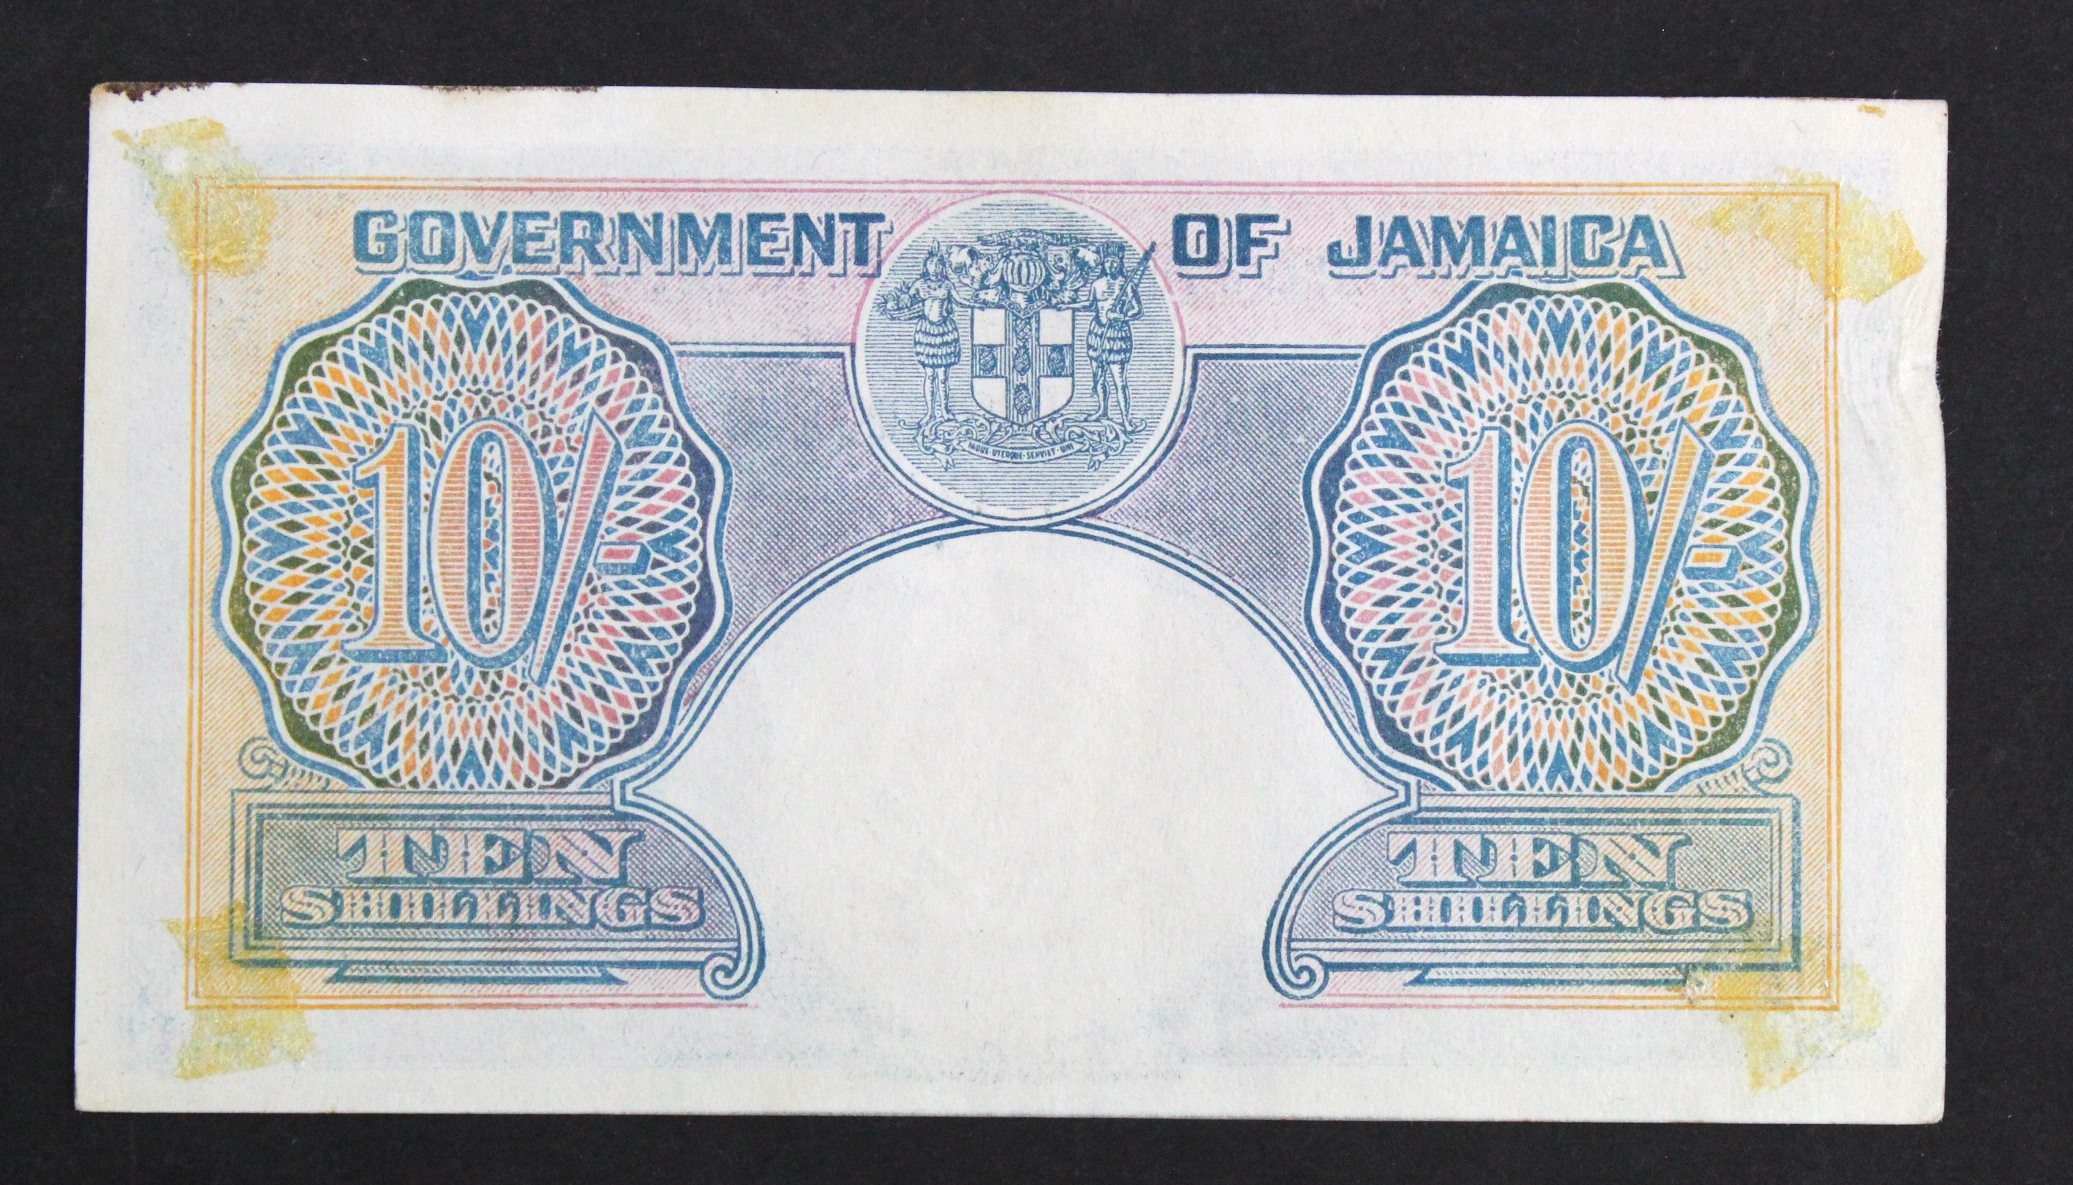 Jamaica 10 Shillings dated 1st November 1940, portrait King George VI at left, in 1941 the SS - Image 2 of 2